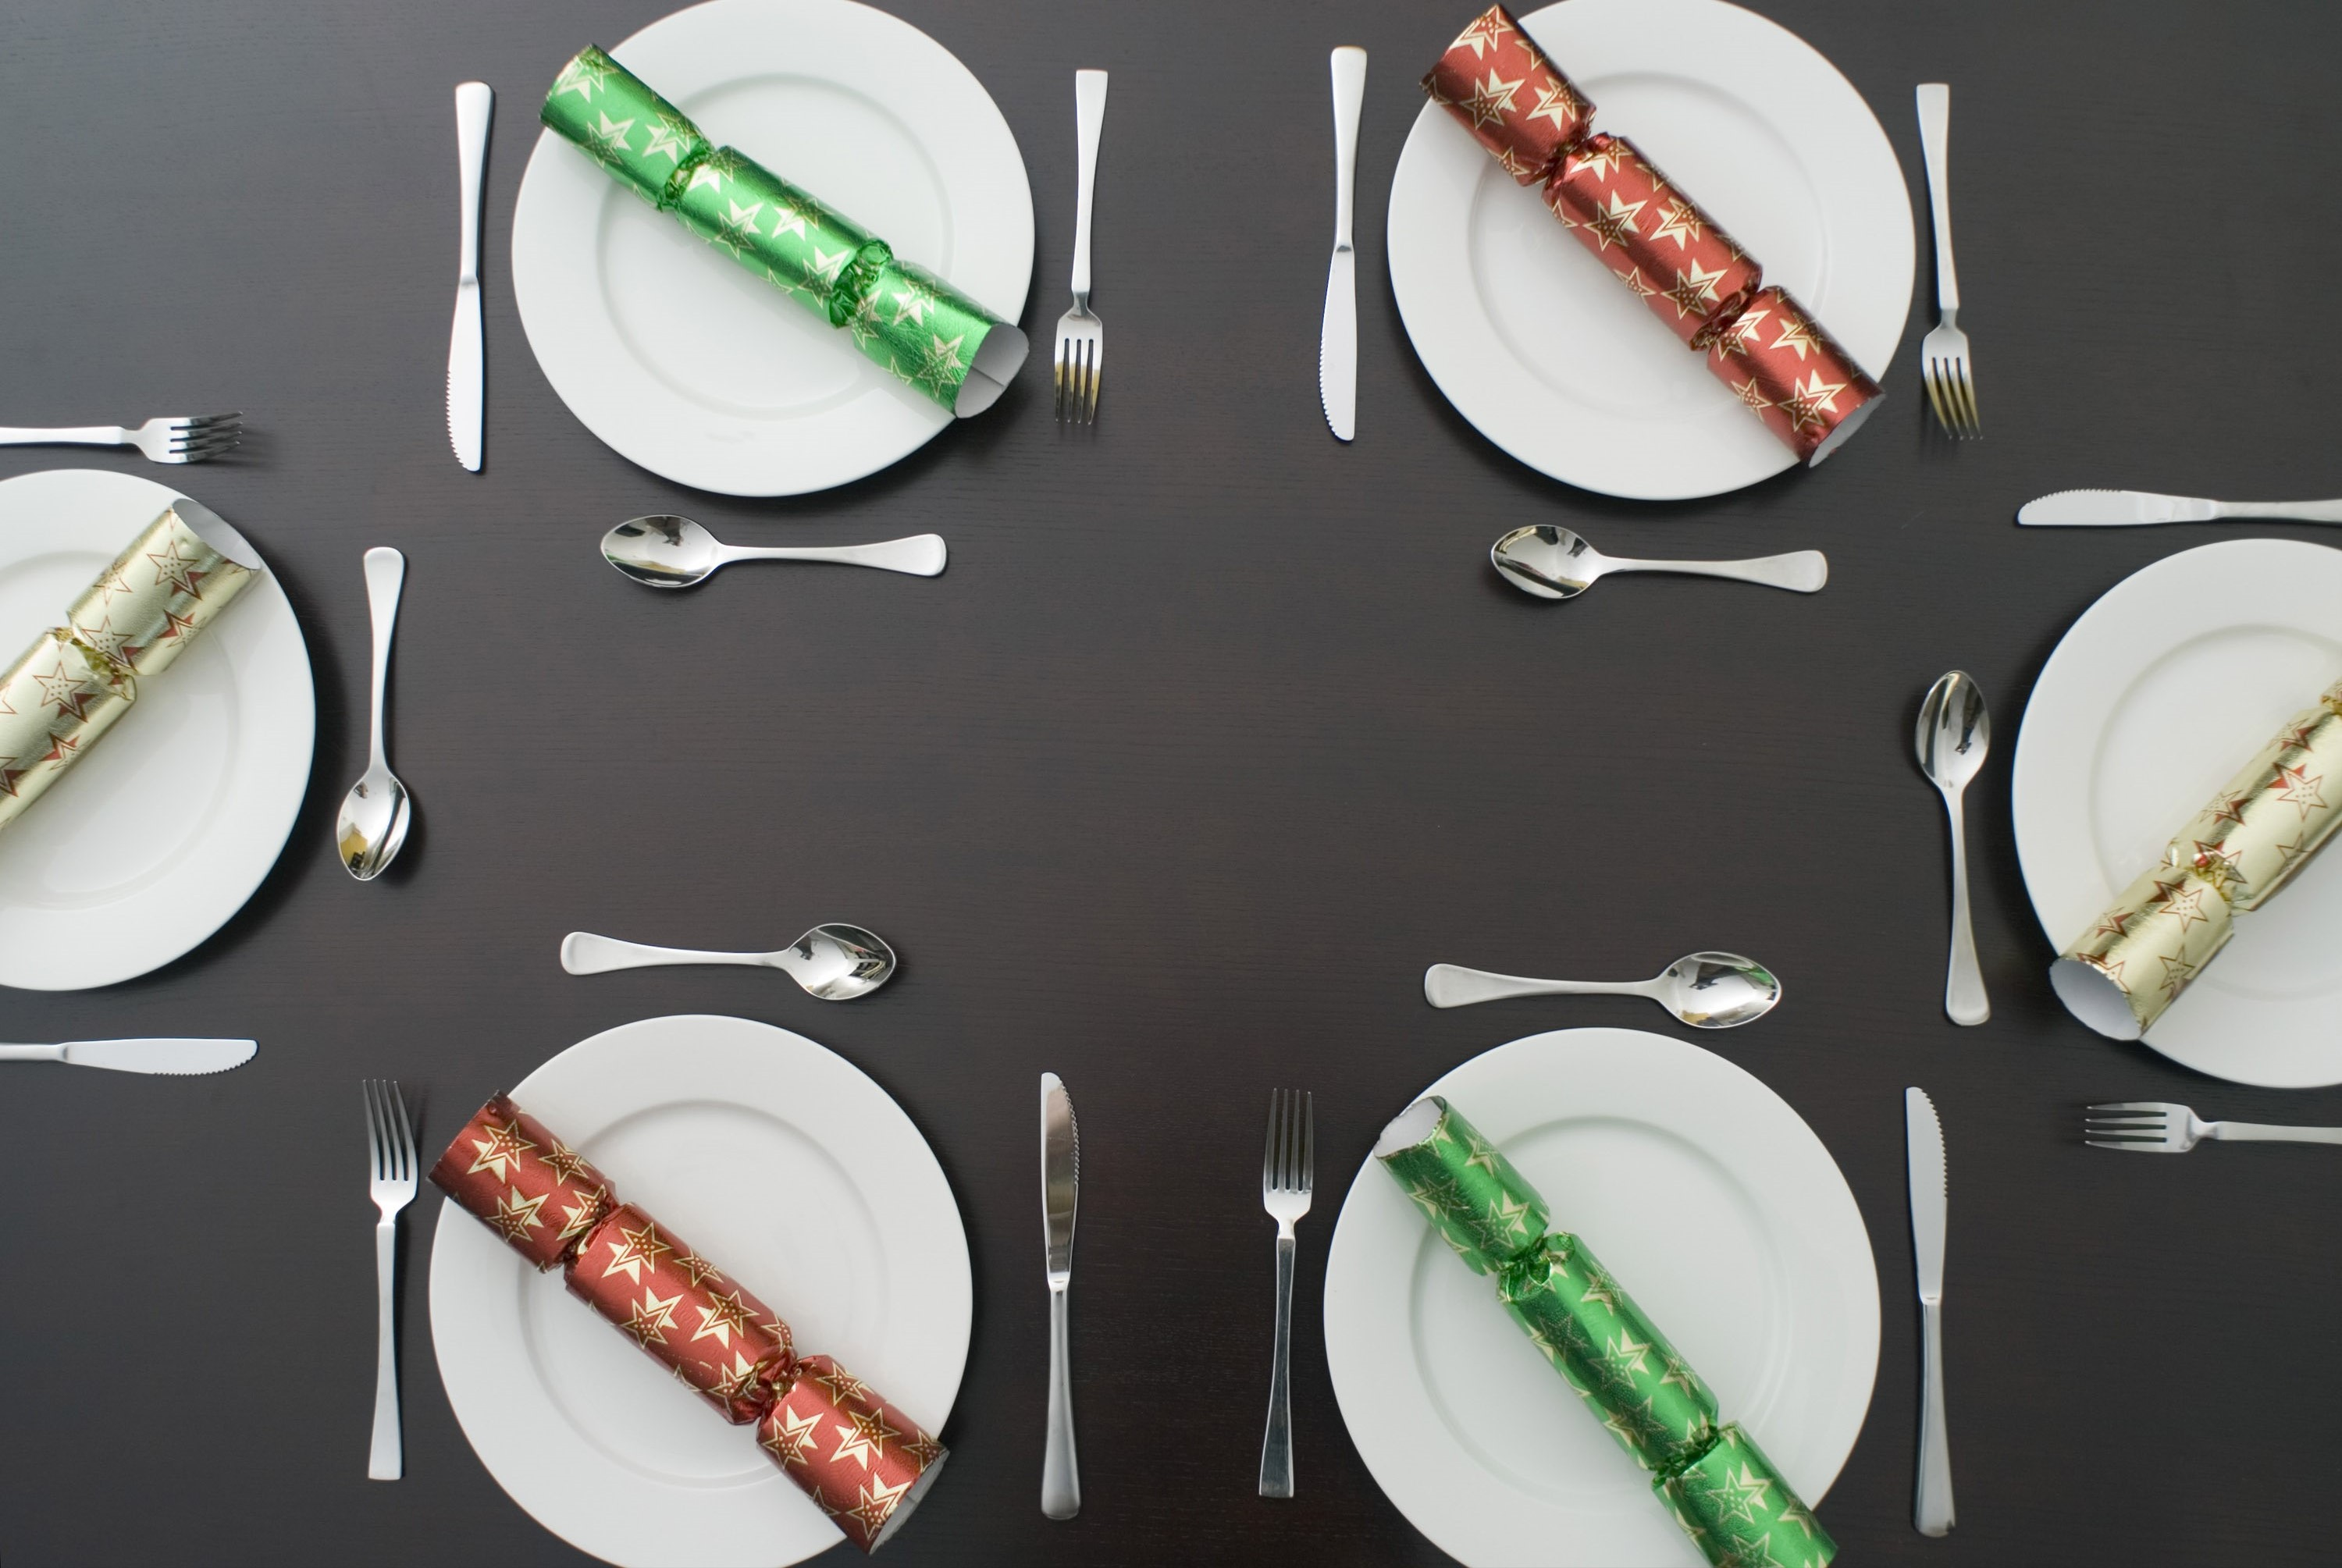 a festive dinner table set up for 6 people to enjoy a celebration meal